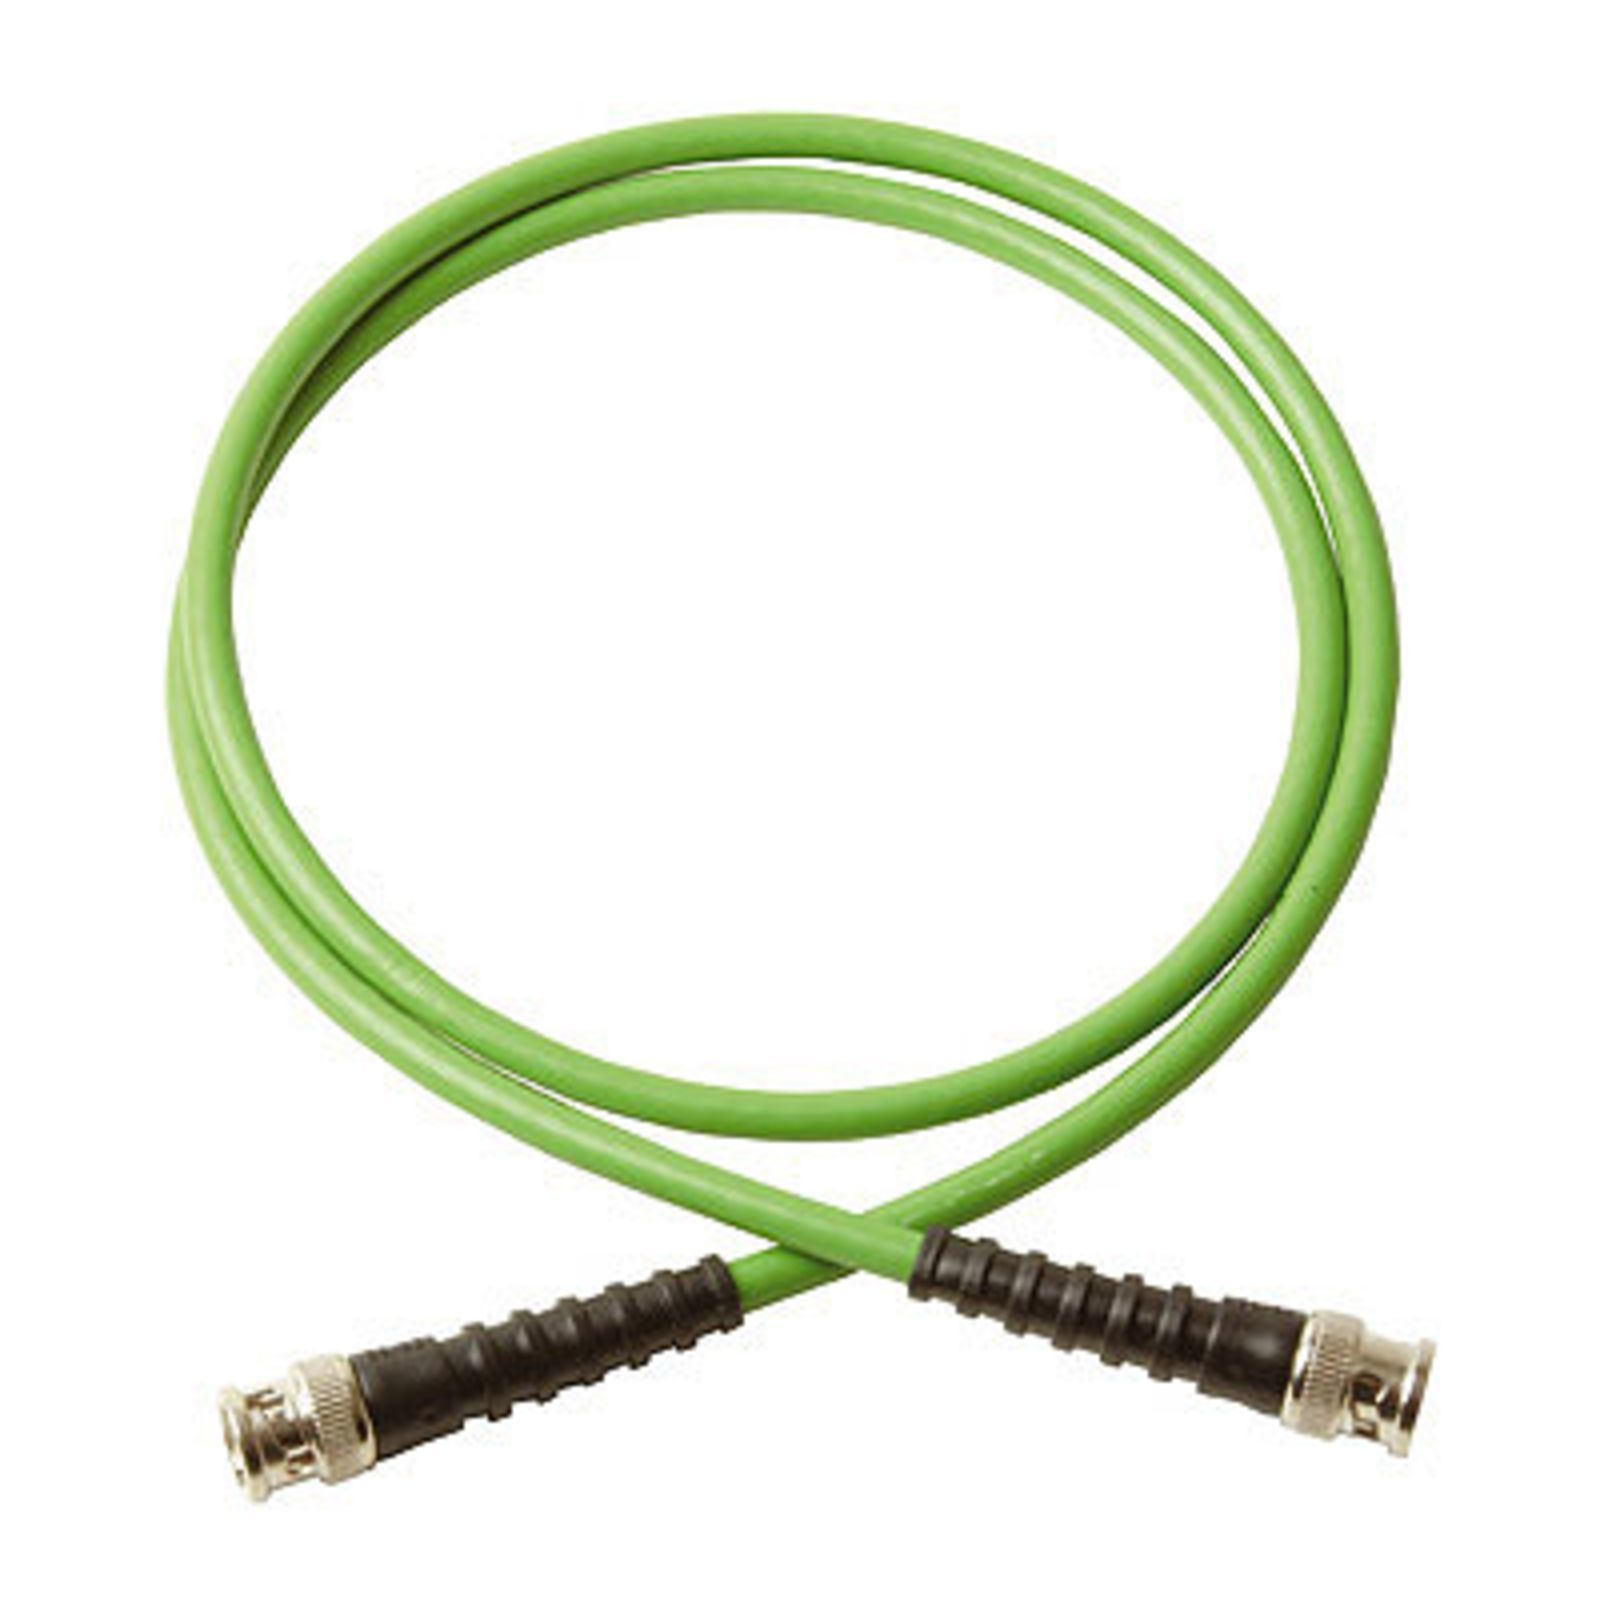 MUSIC STORE MTB 20,0 BNC-75 WordclockCable BNC-Plug, 75 ohm, 20m Product Image